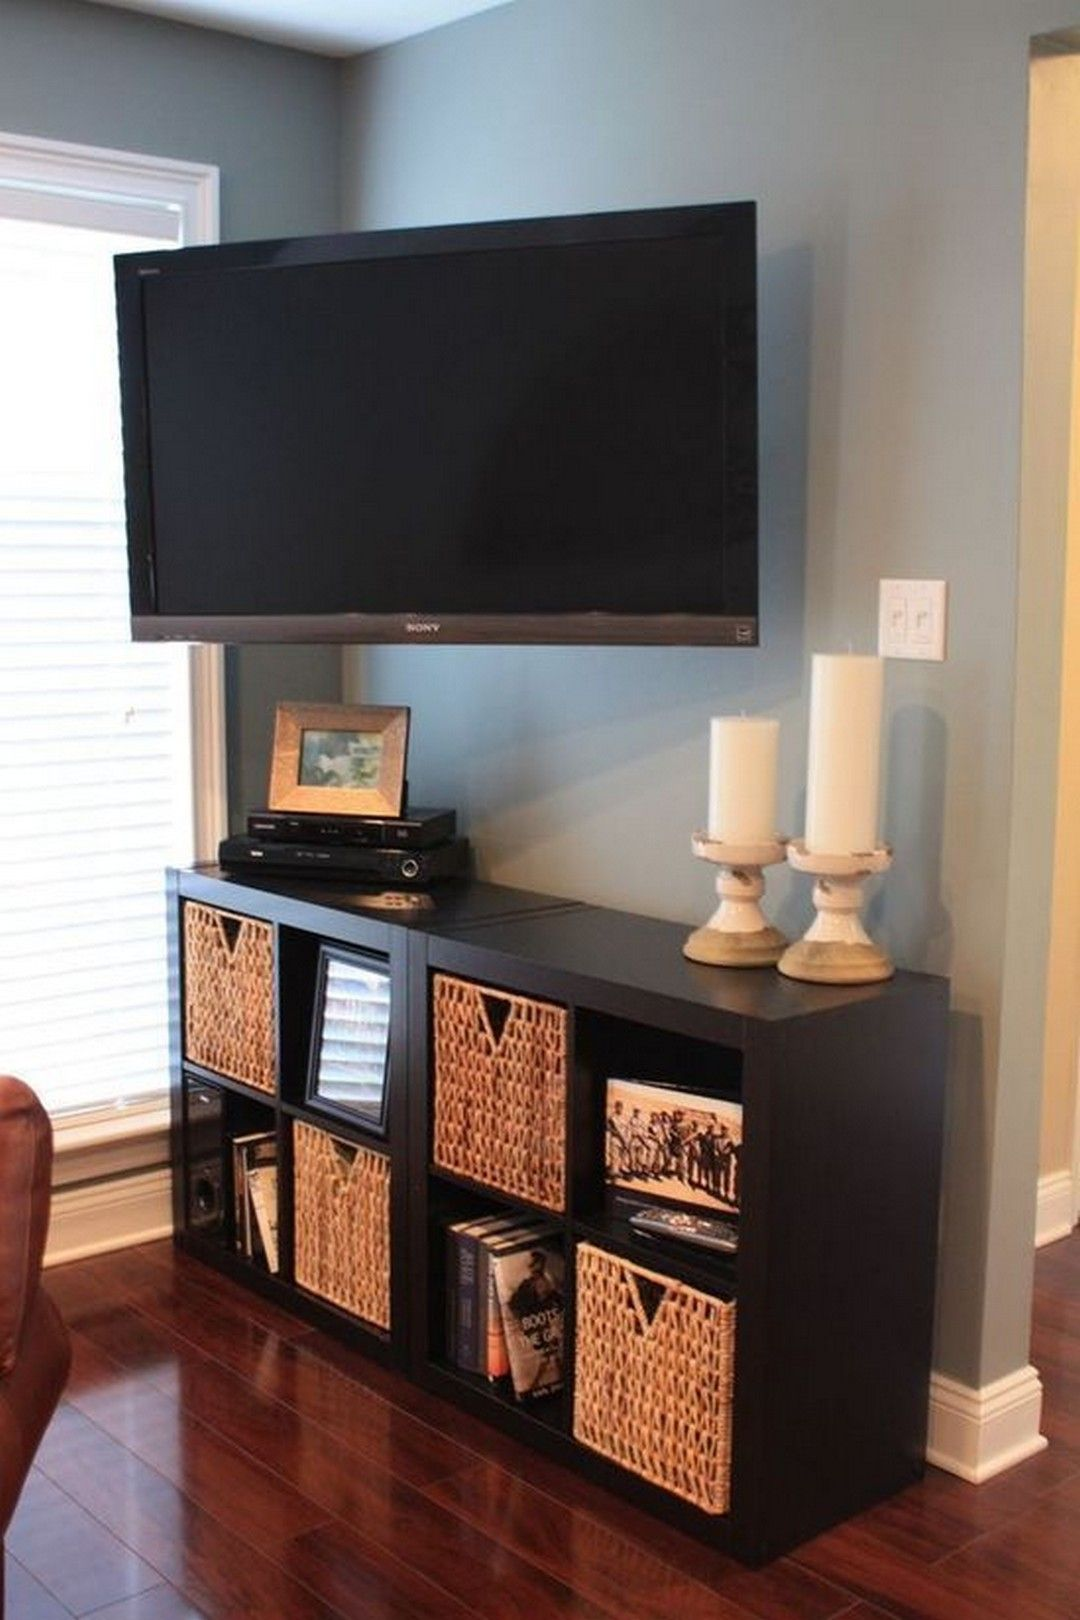 Cool 100 diy home decor ideas on a budget you must try http best diy apartment decorating ideas on a budget there are no better decorating than do it yourself so we have a lot of resource and ideas about diy solutioingenieria Image collections